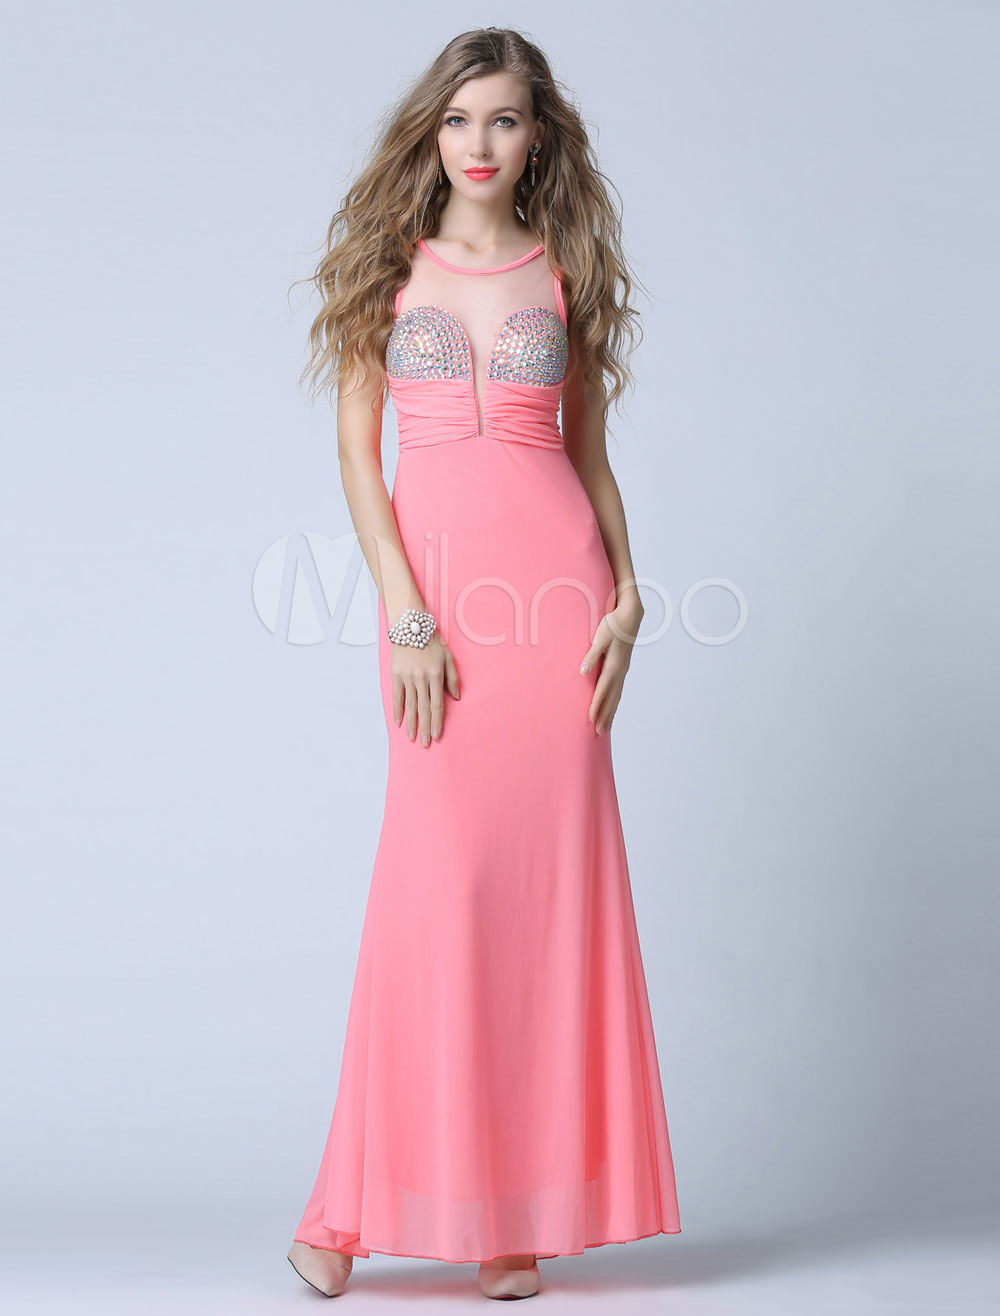 Pink Prom Dress Backless Illusion Beaded Evening Dress (Wedding Cheap Party Dress) photo